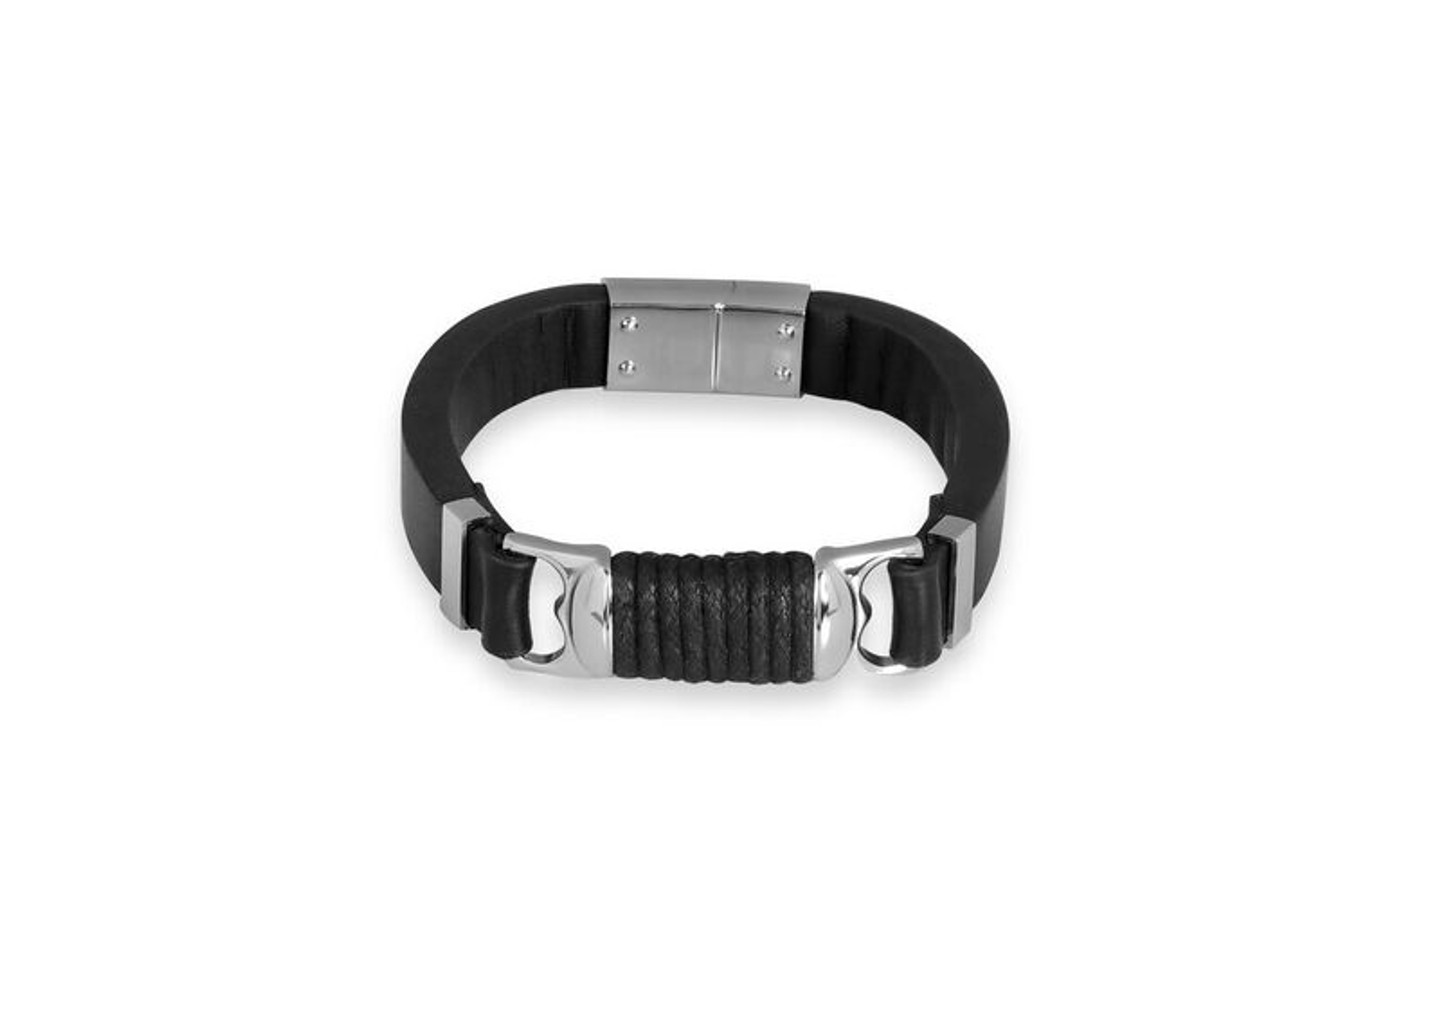 SteelX Steel & Black Leather Bracelet 9""